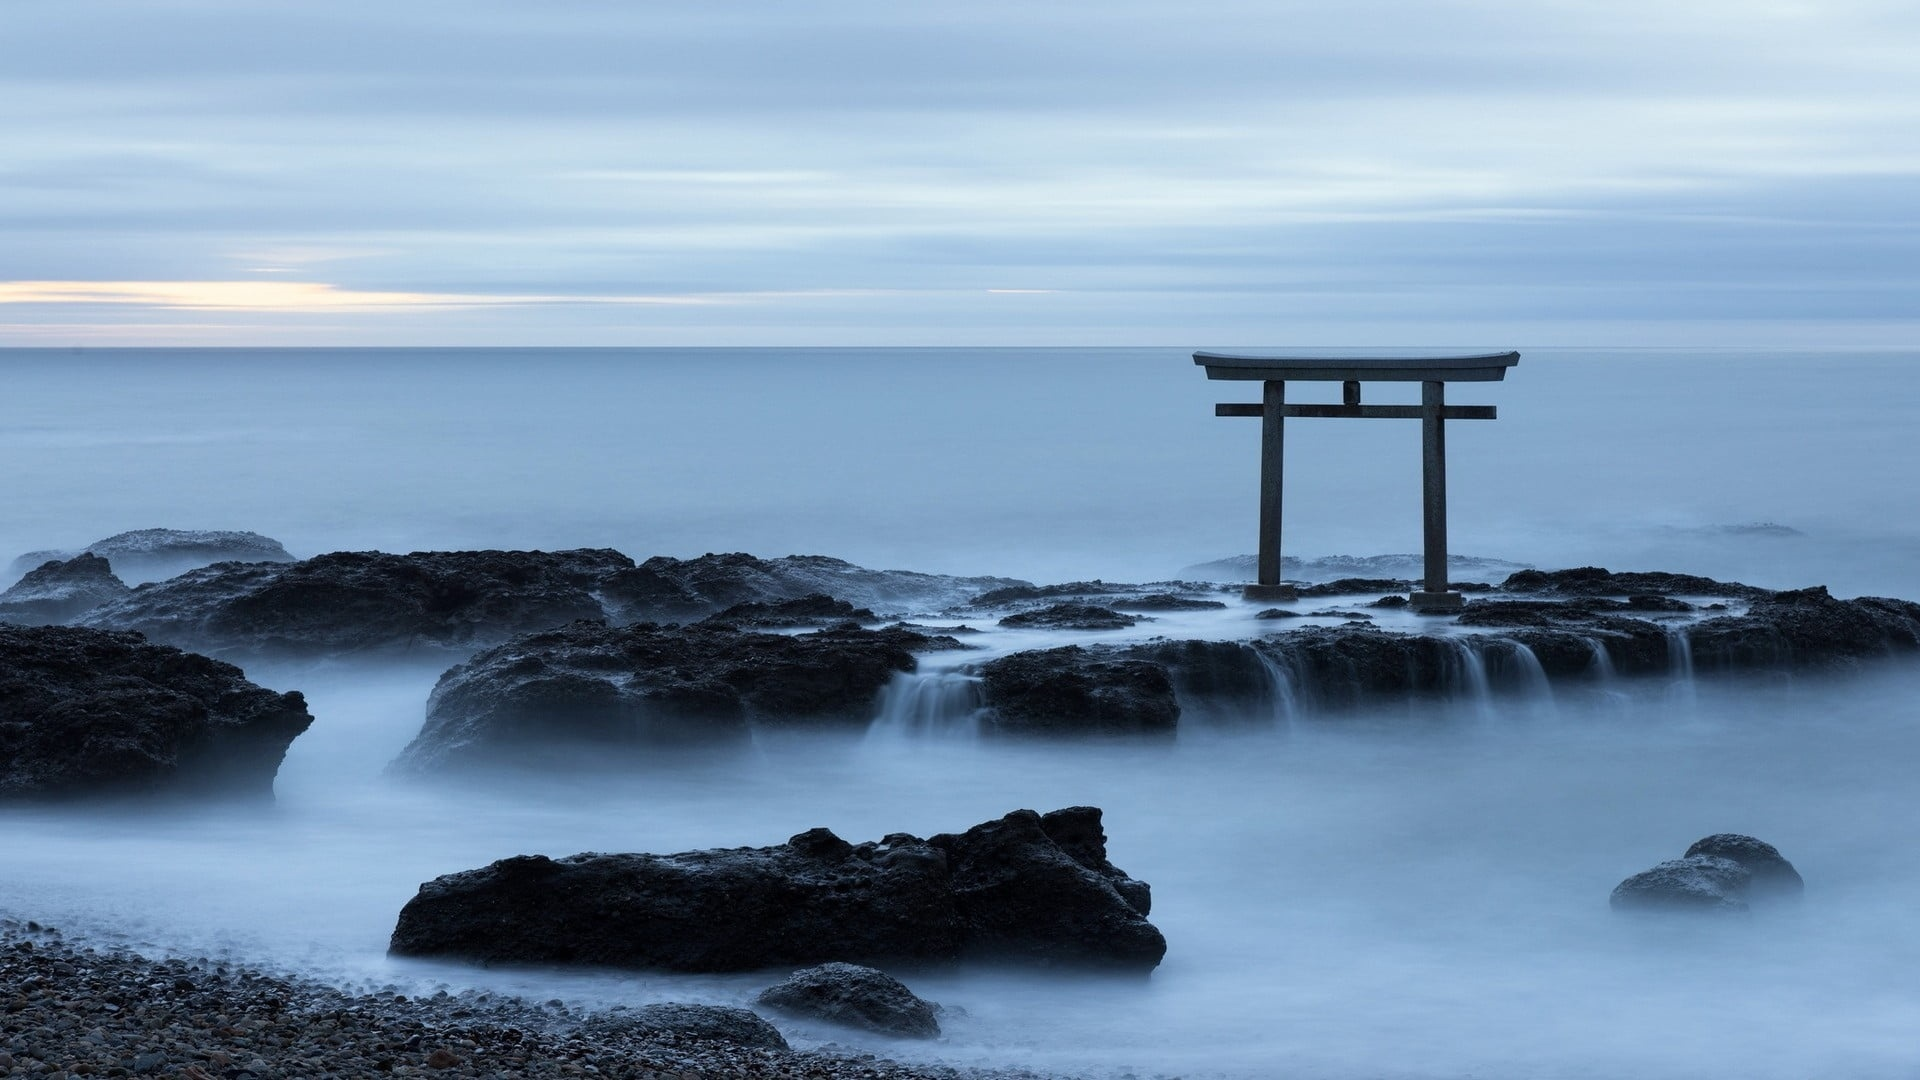 Torii Gate wallpaper for desktop